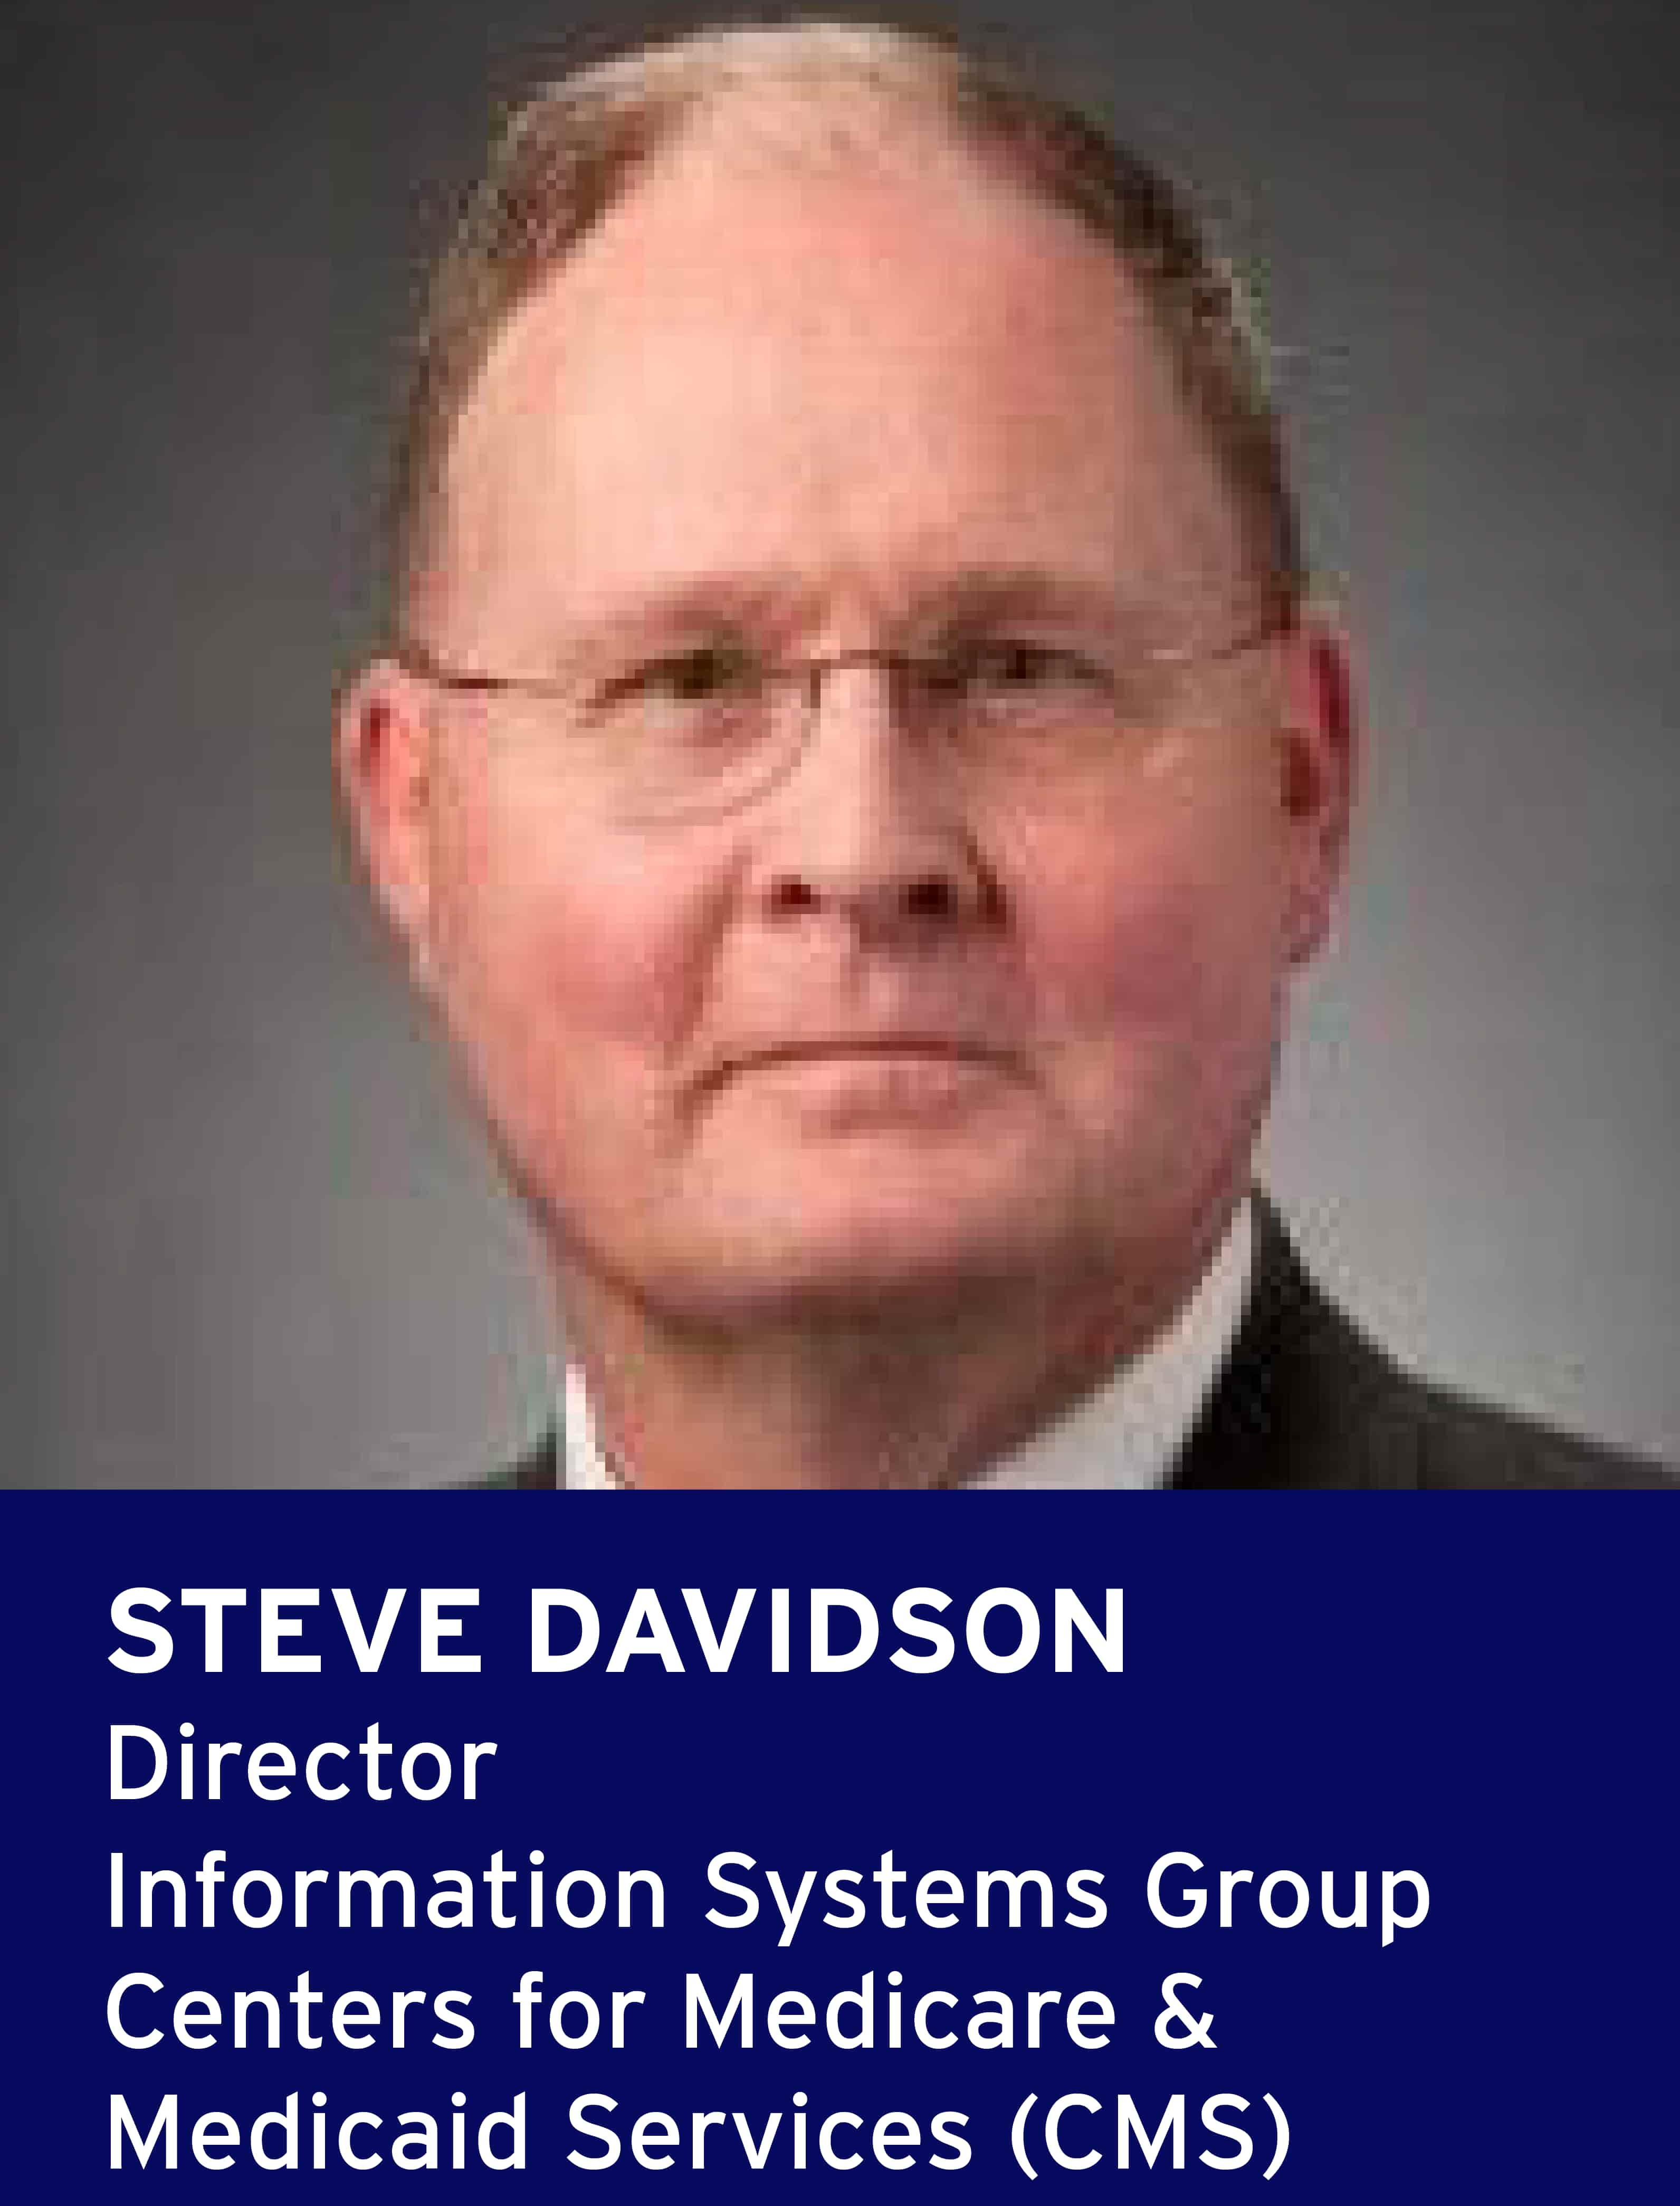 Steve Davidson, Director, Information Systems Group, Centers for Medicare and Medicaid